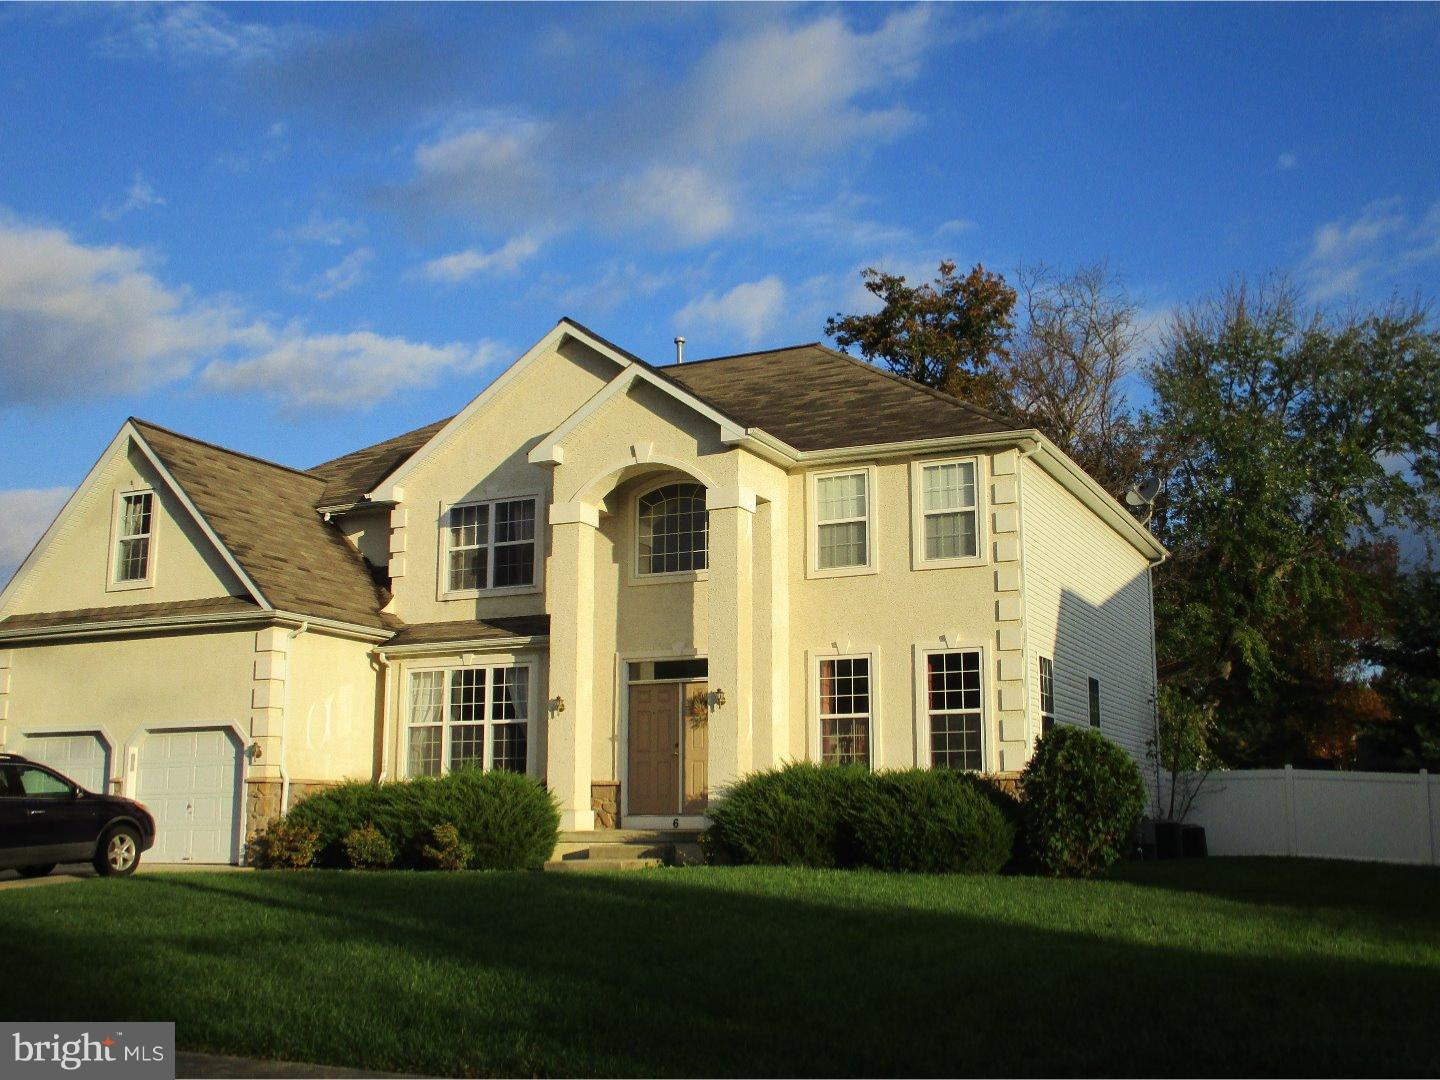 Single Family Home for Sale at 6 ENCLAVE Court Evesham Twp, New Jersey 08053 United States